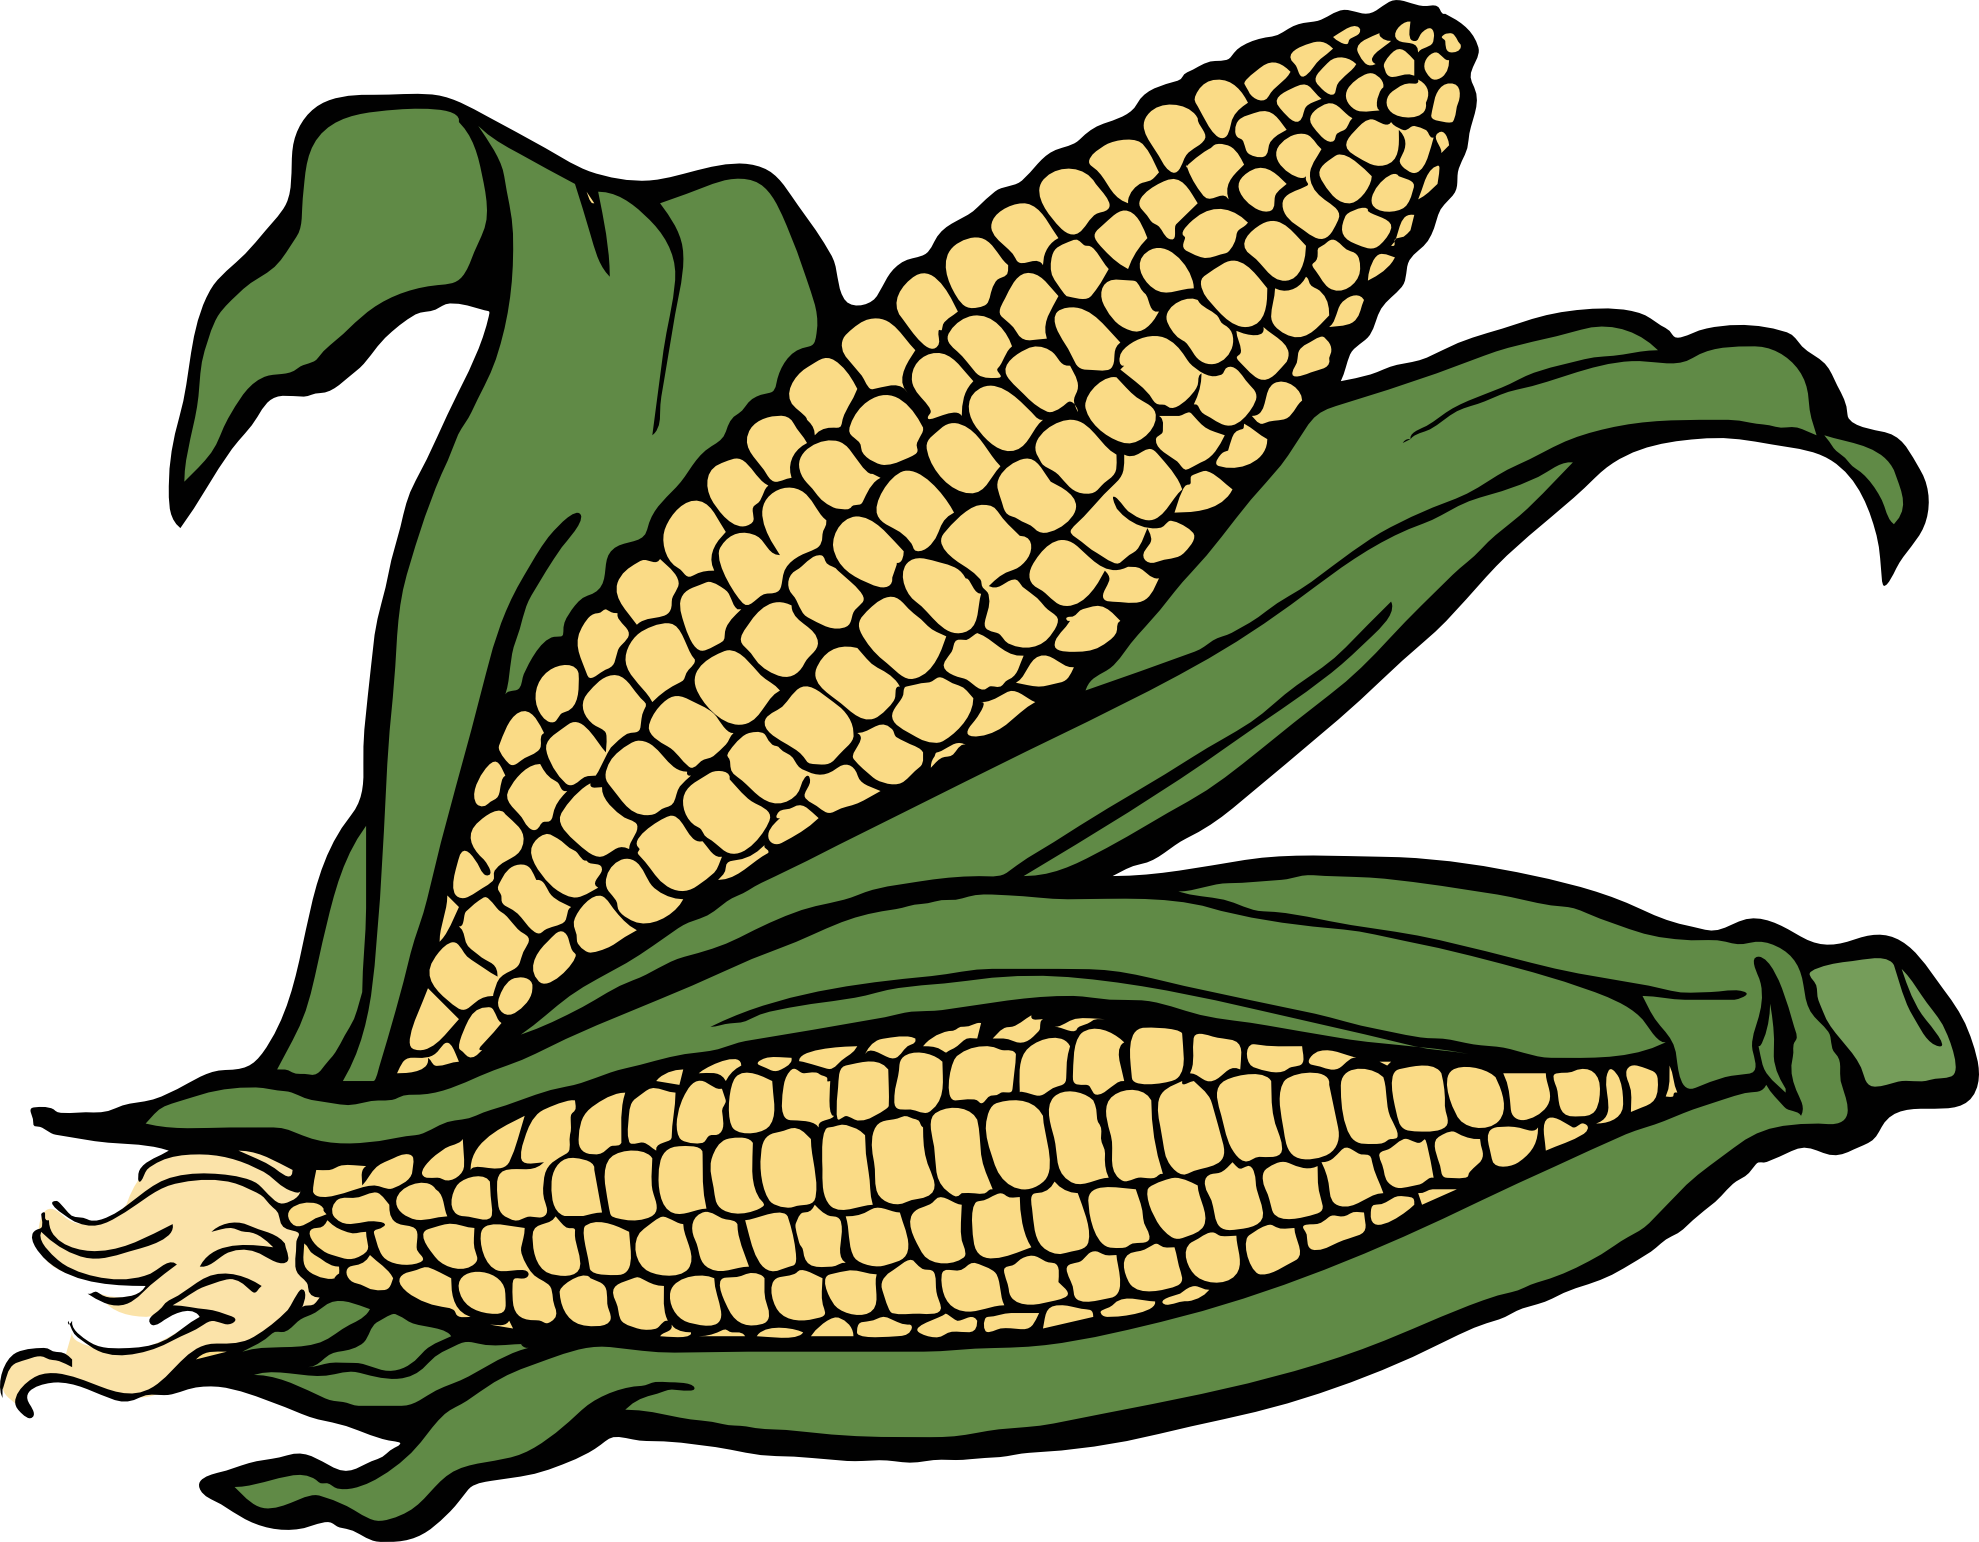 corn coloring book | Clipart Panda - Free Clipart Images